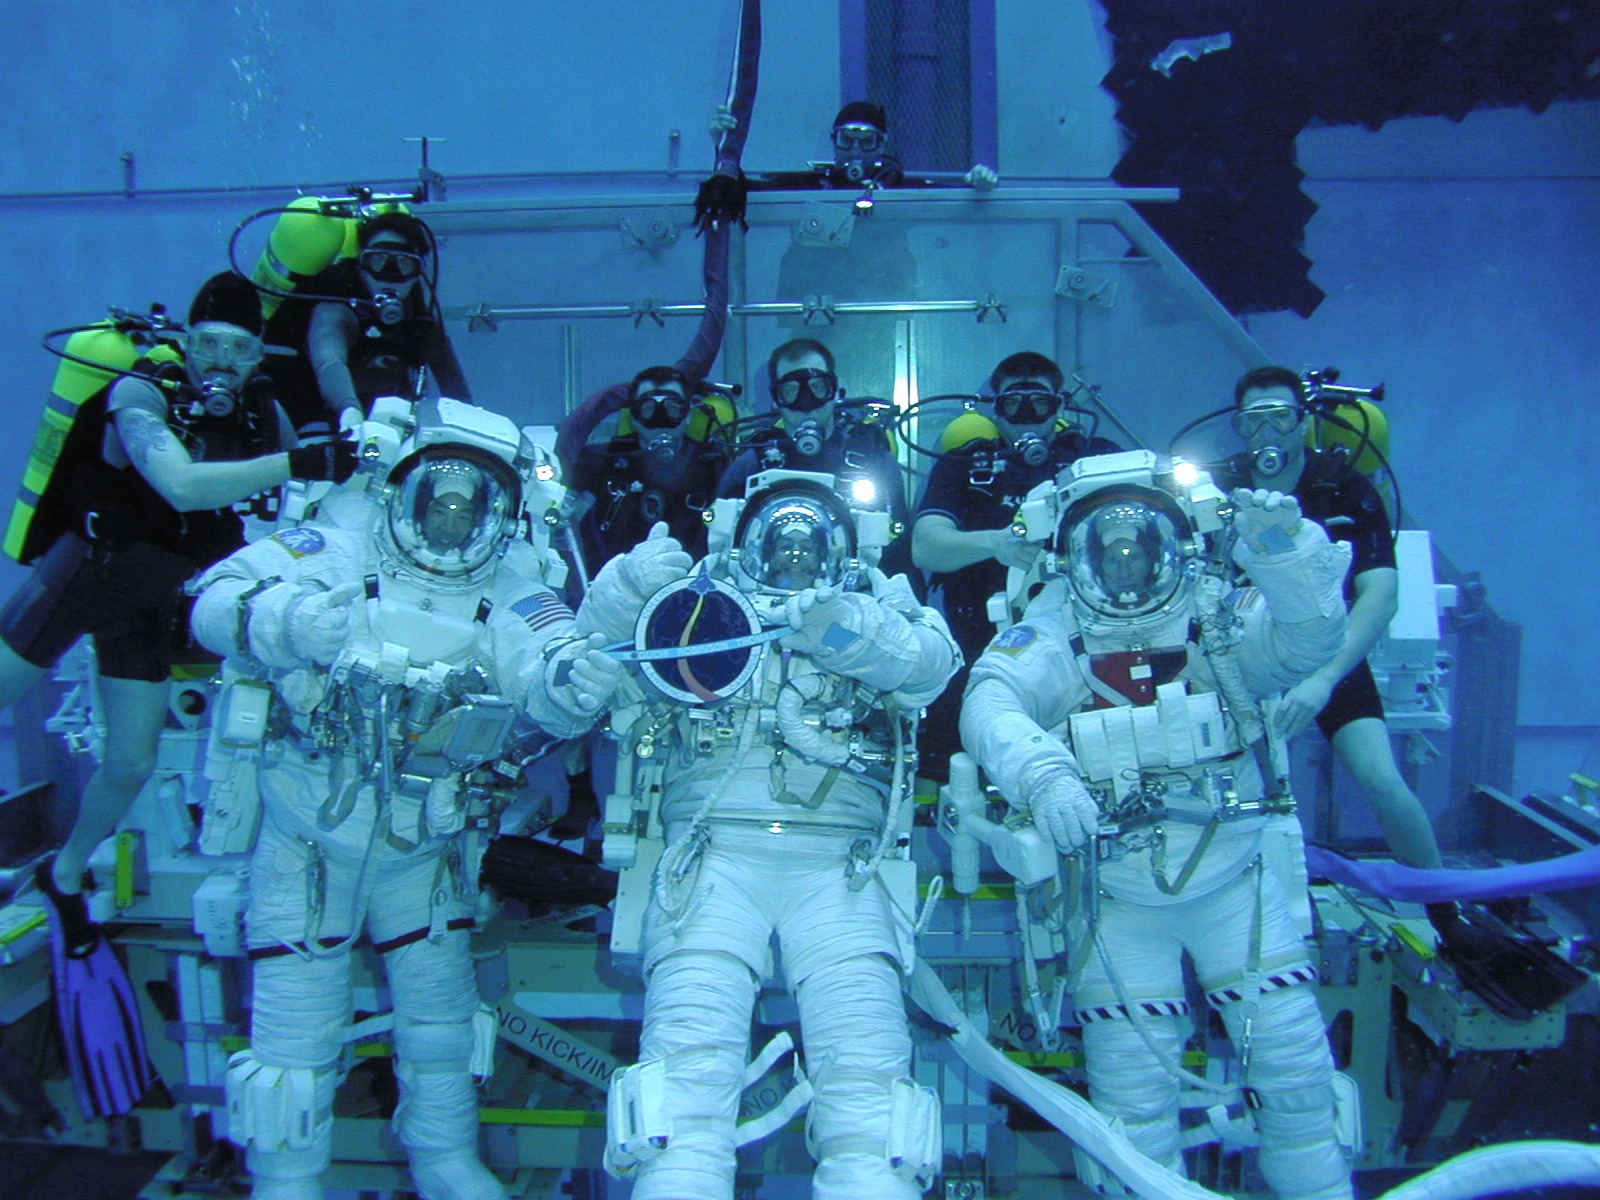 NASA Image & Video Library | STS-114 astronauts during underwater training | All credits to NASA.gov